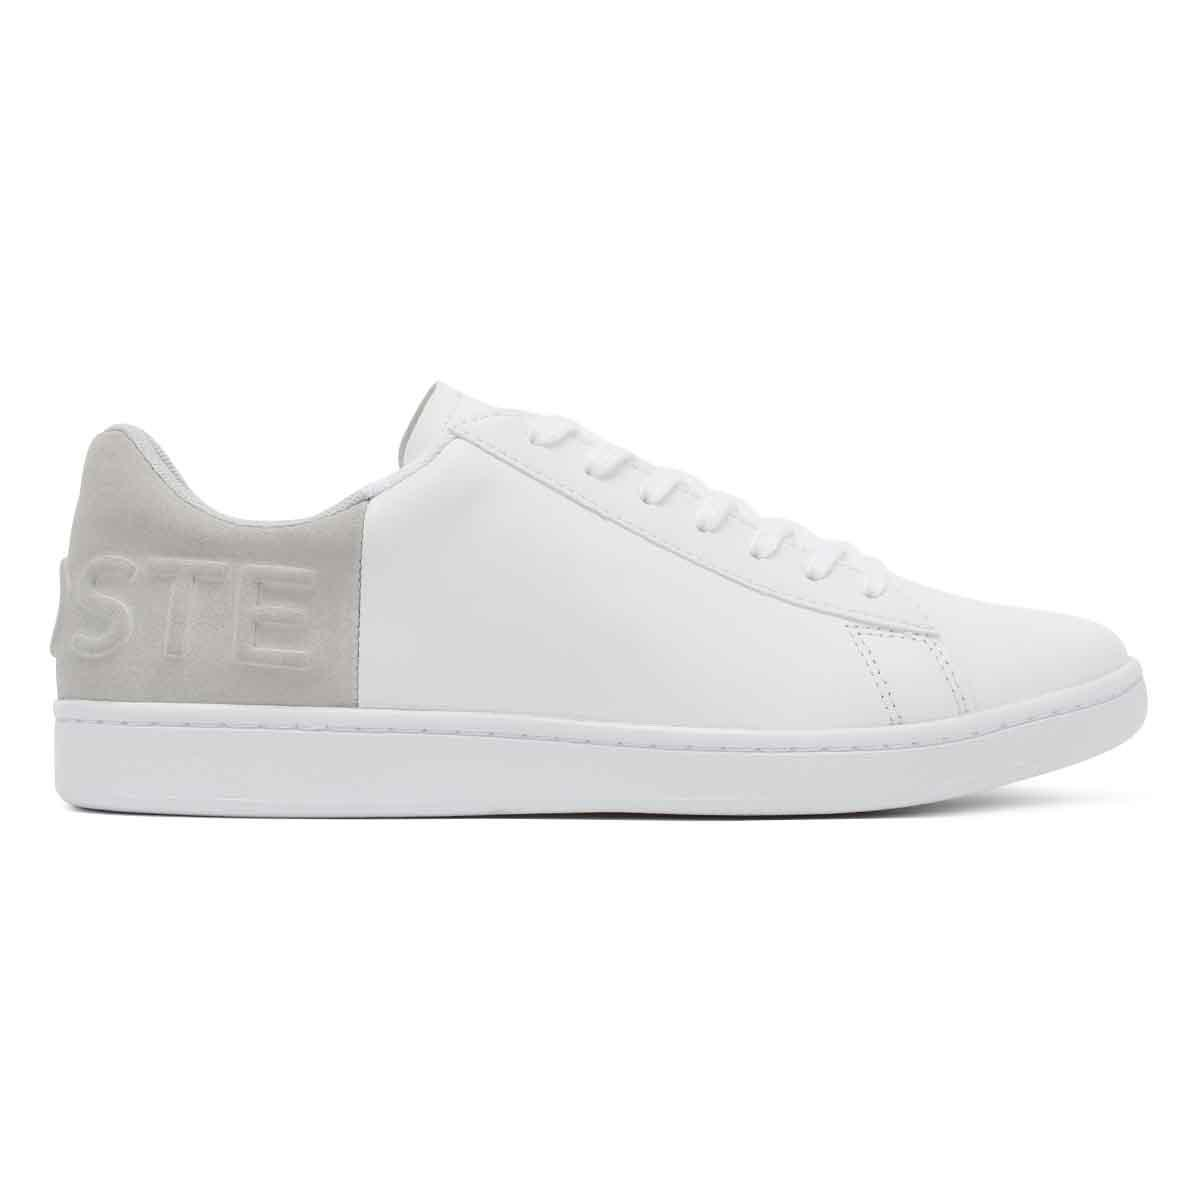 b586204118ee6b Lacoste Womens White   Light Grey Carnaby Evo 318 3 Trainers in ...